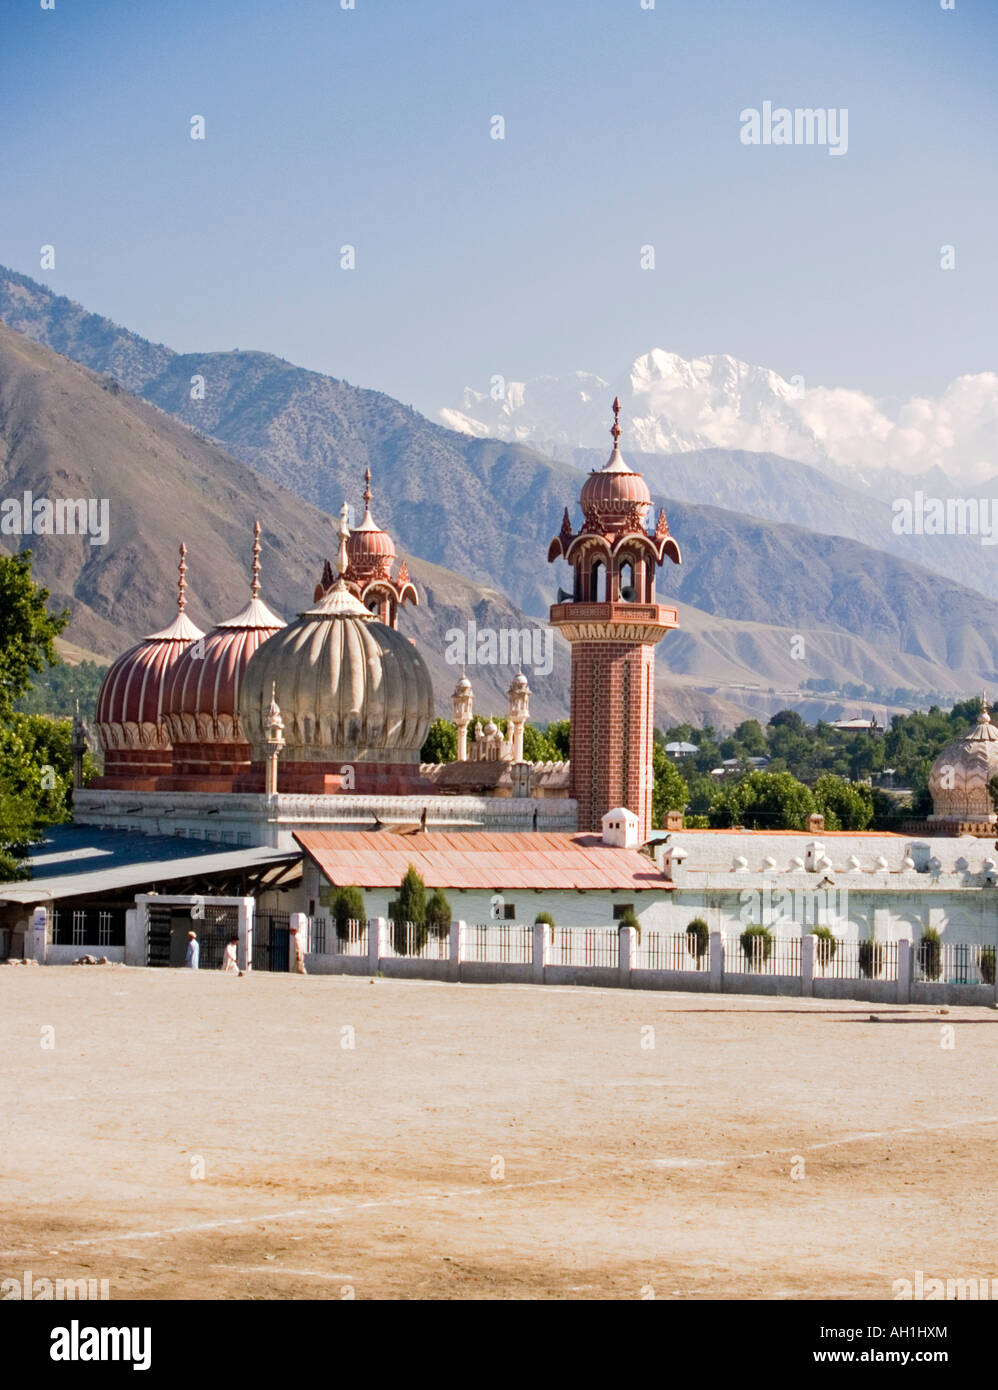 the surreal Shahi Mosque with Trich Mir peak in the Hindu Kush mountains towering behind it Chitral Pakistan - Stock Image